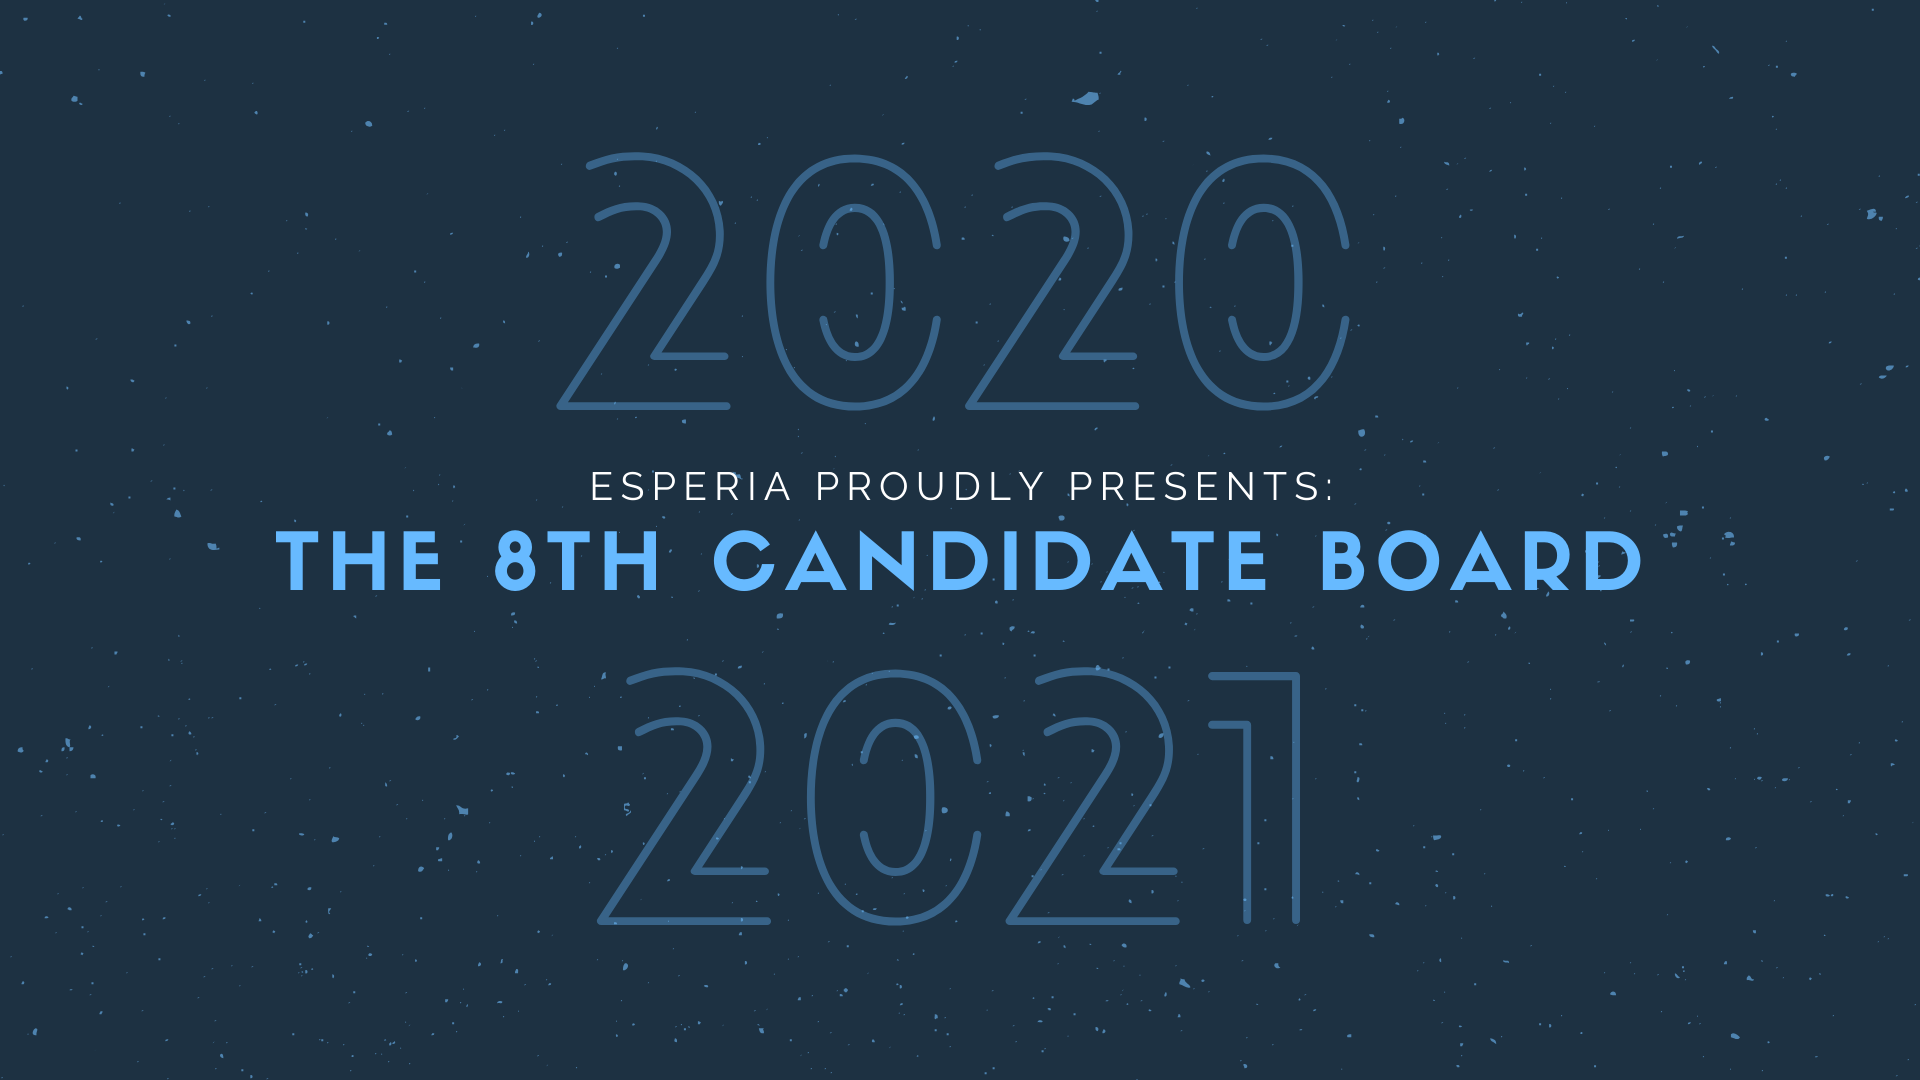 The 8th Candidate Board!